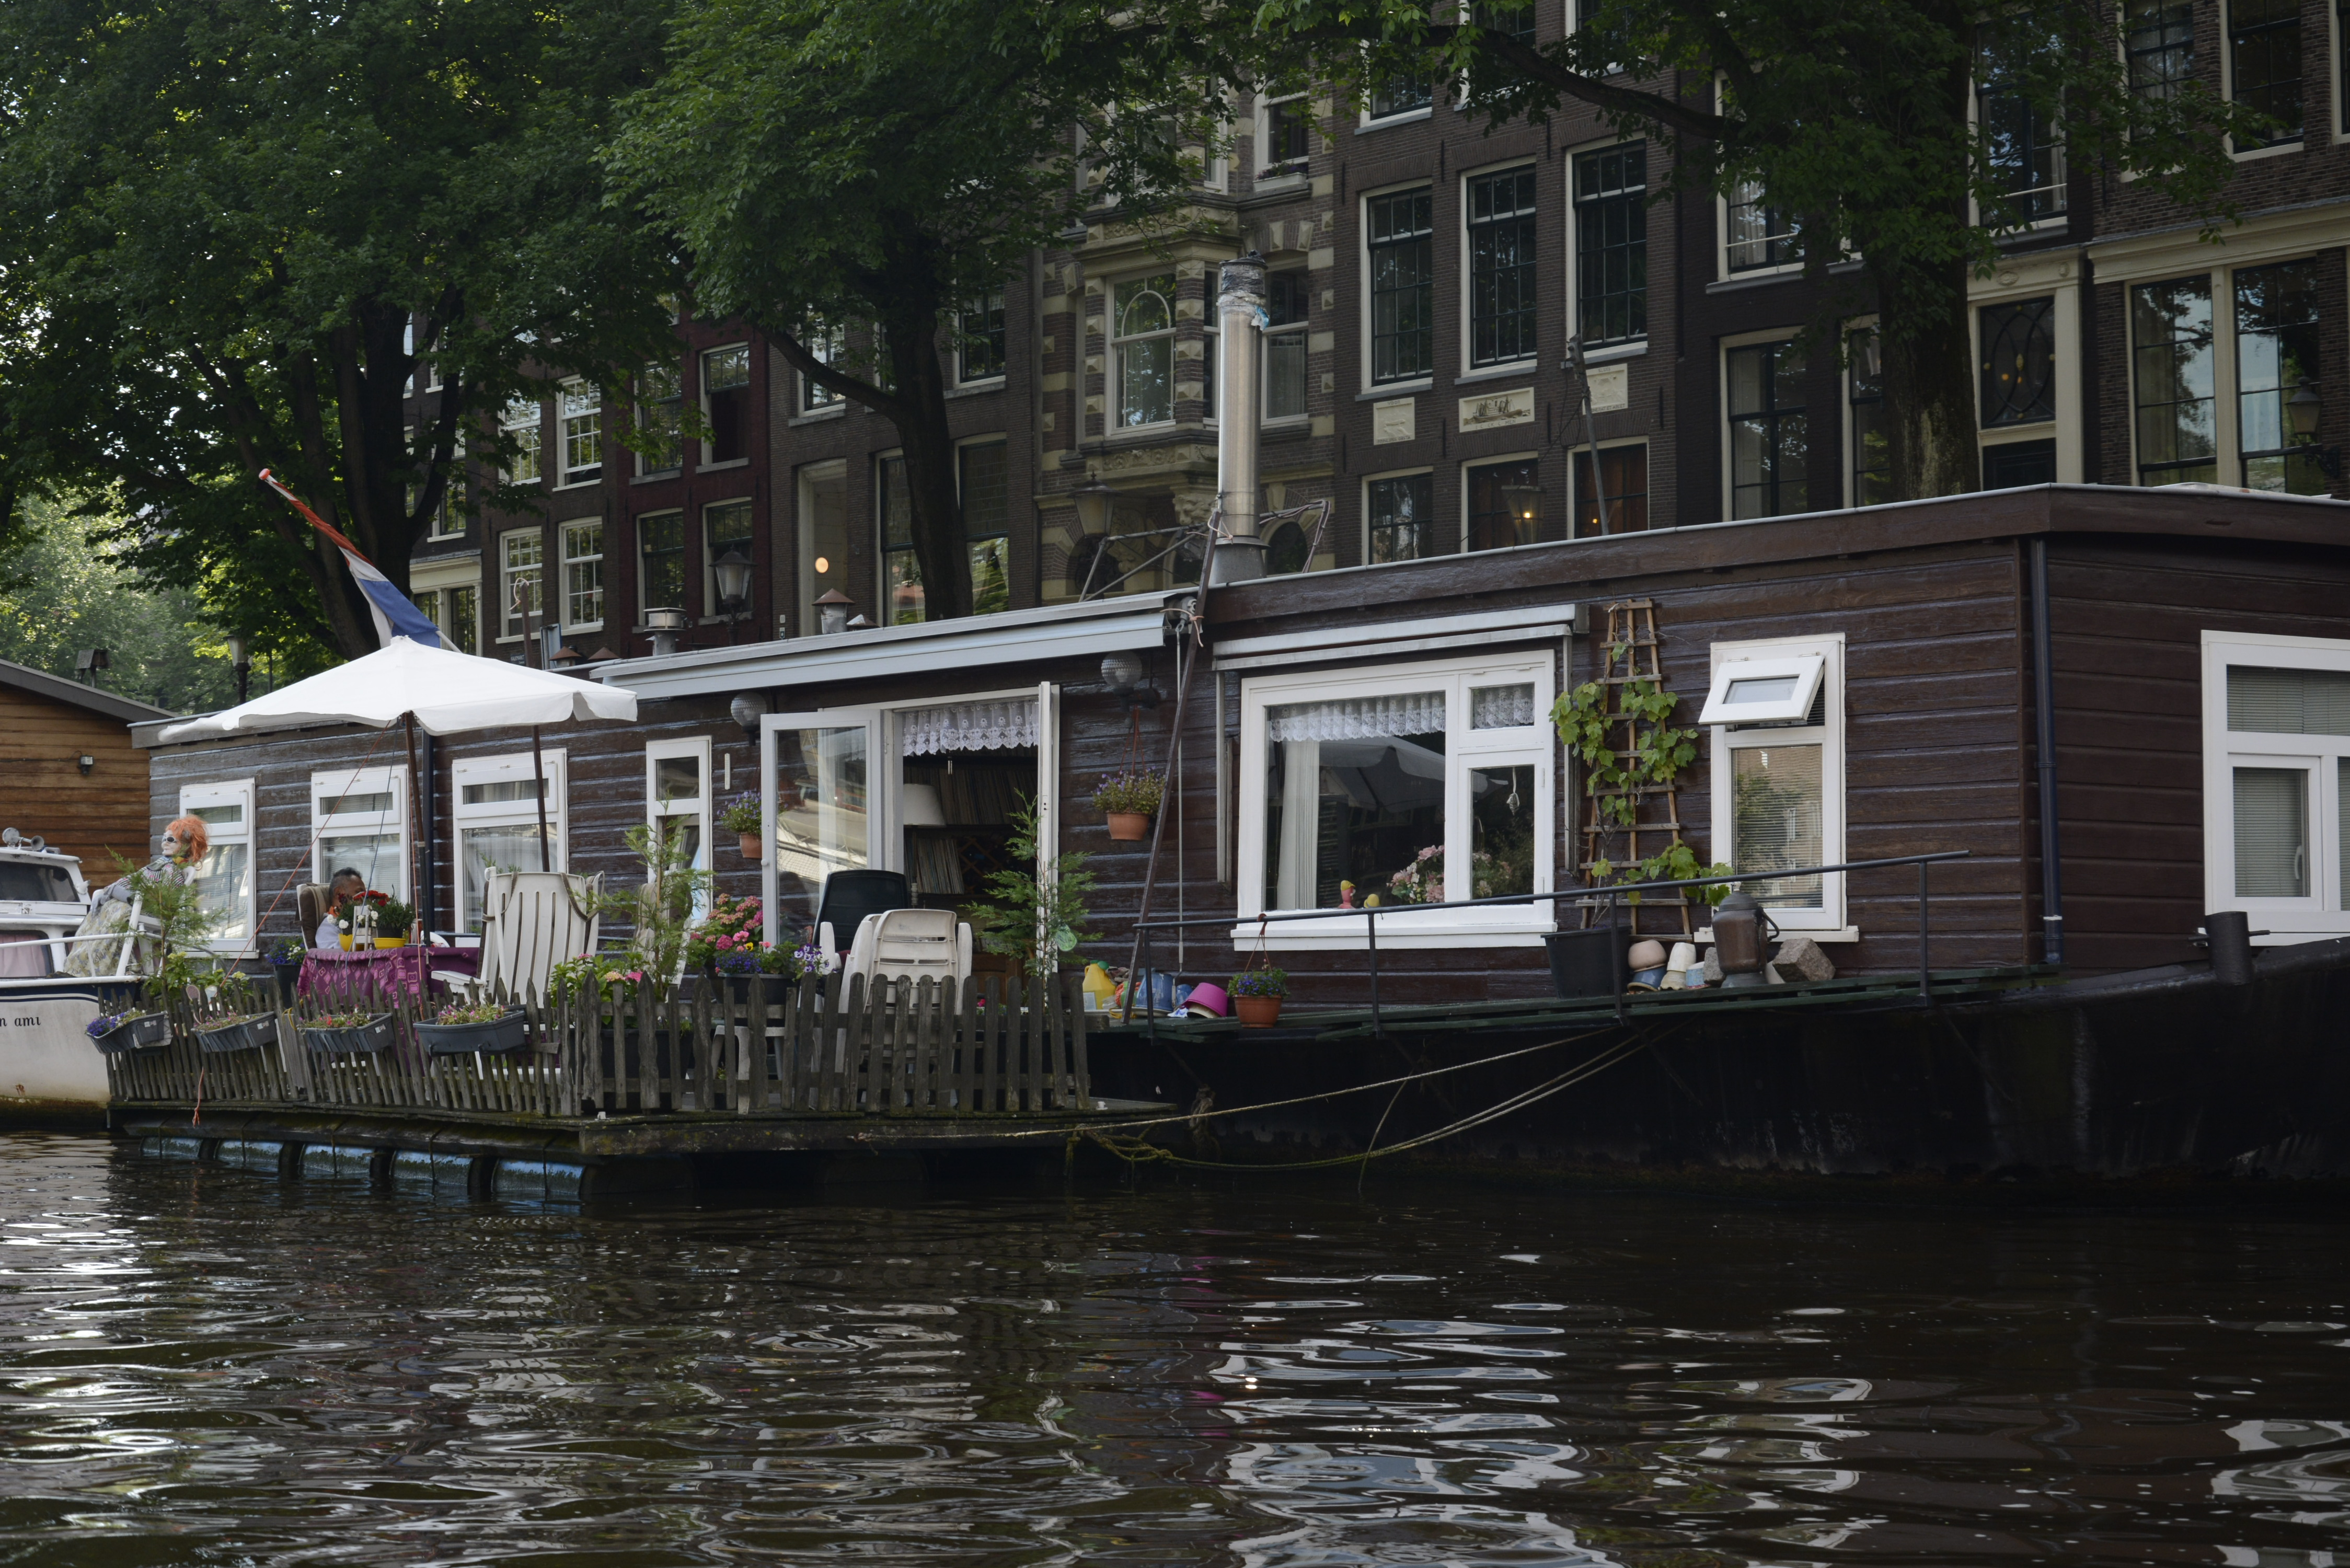 house boat in amsterdam